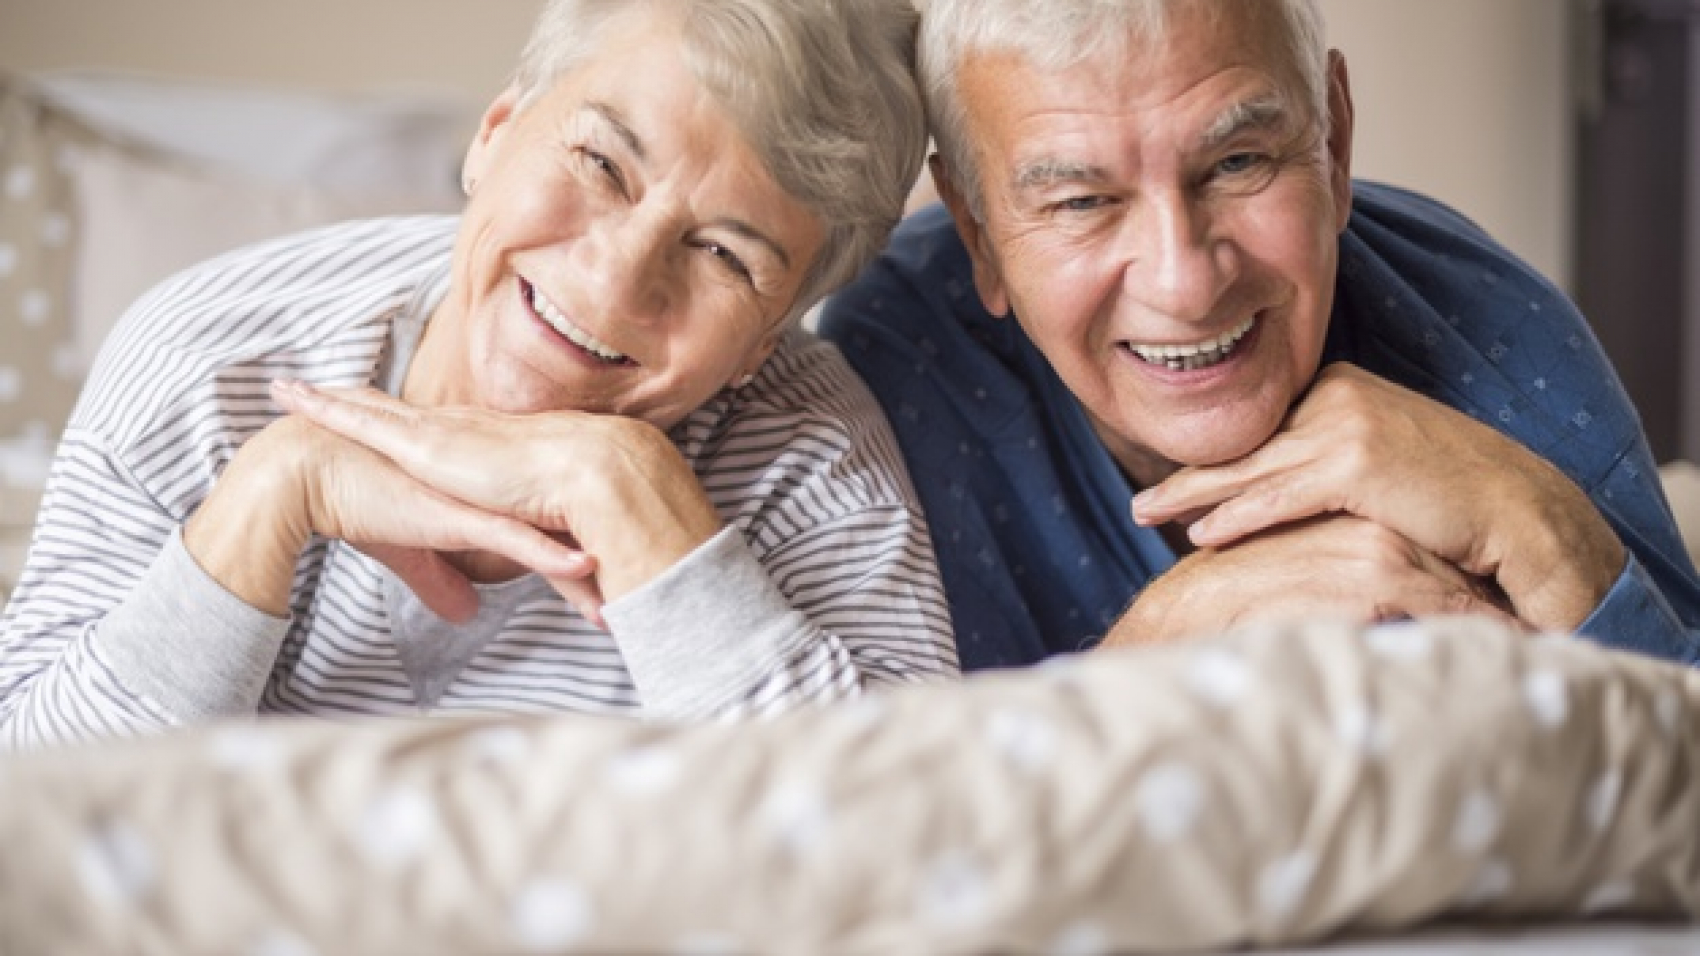 portrait-of-cheerful-senior-adults-in-the-bedroom_329181-7725